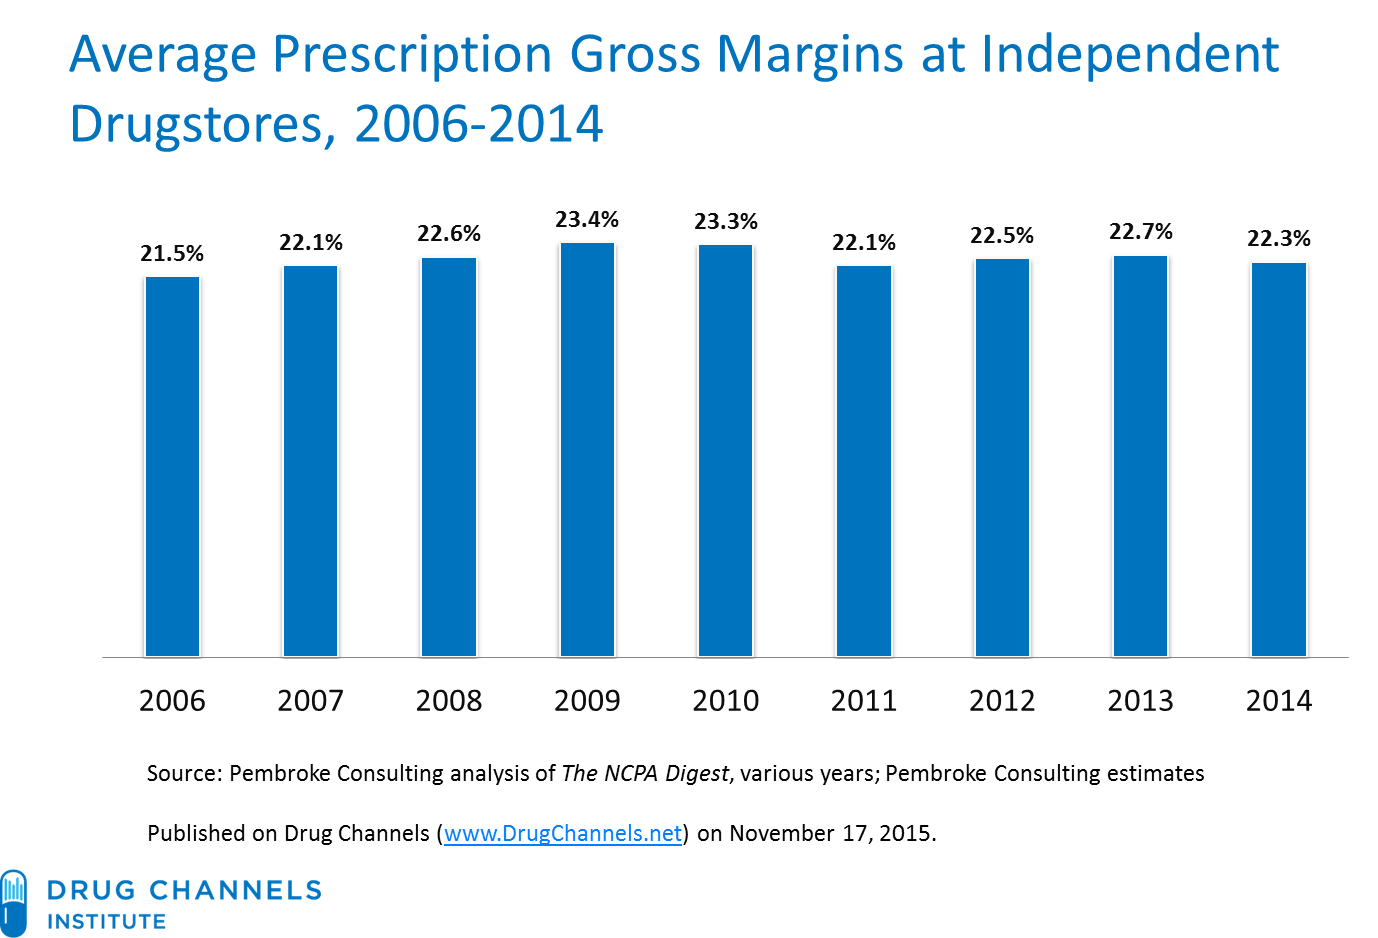 drug channels independent pharmacy economics profits steady but observation 3 an independent pharmacy s gross profit per prescription declined